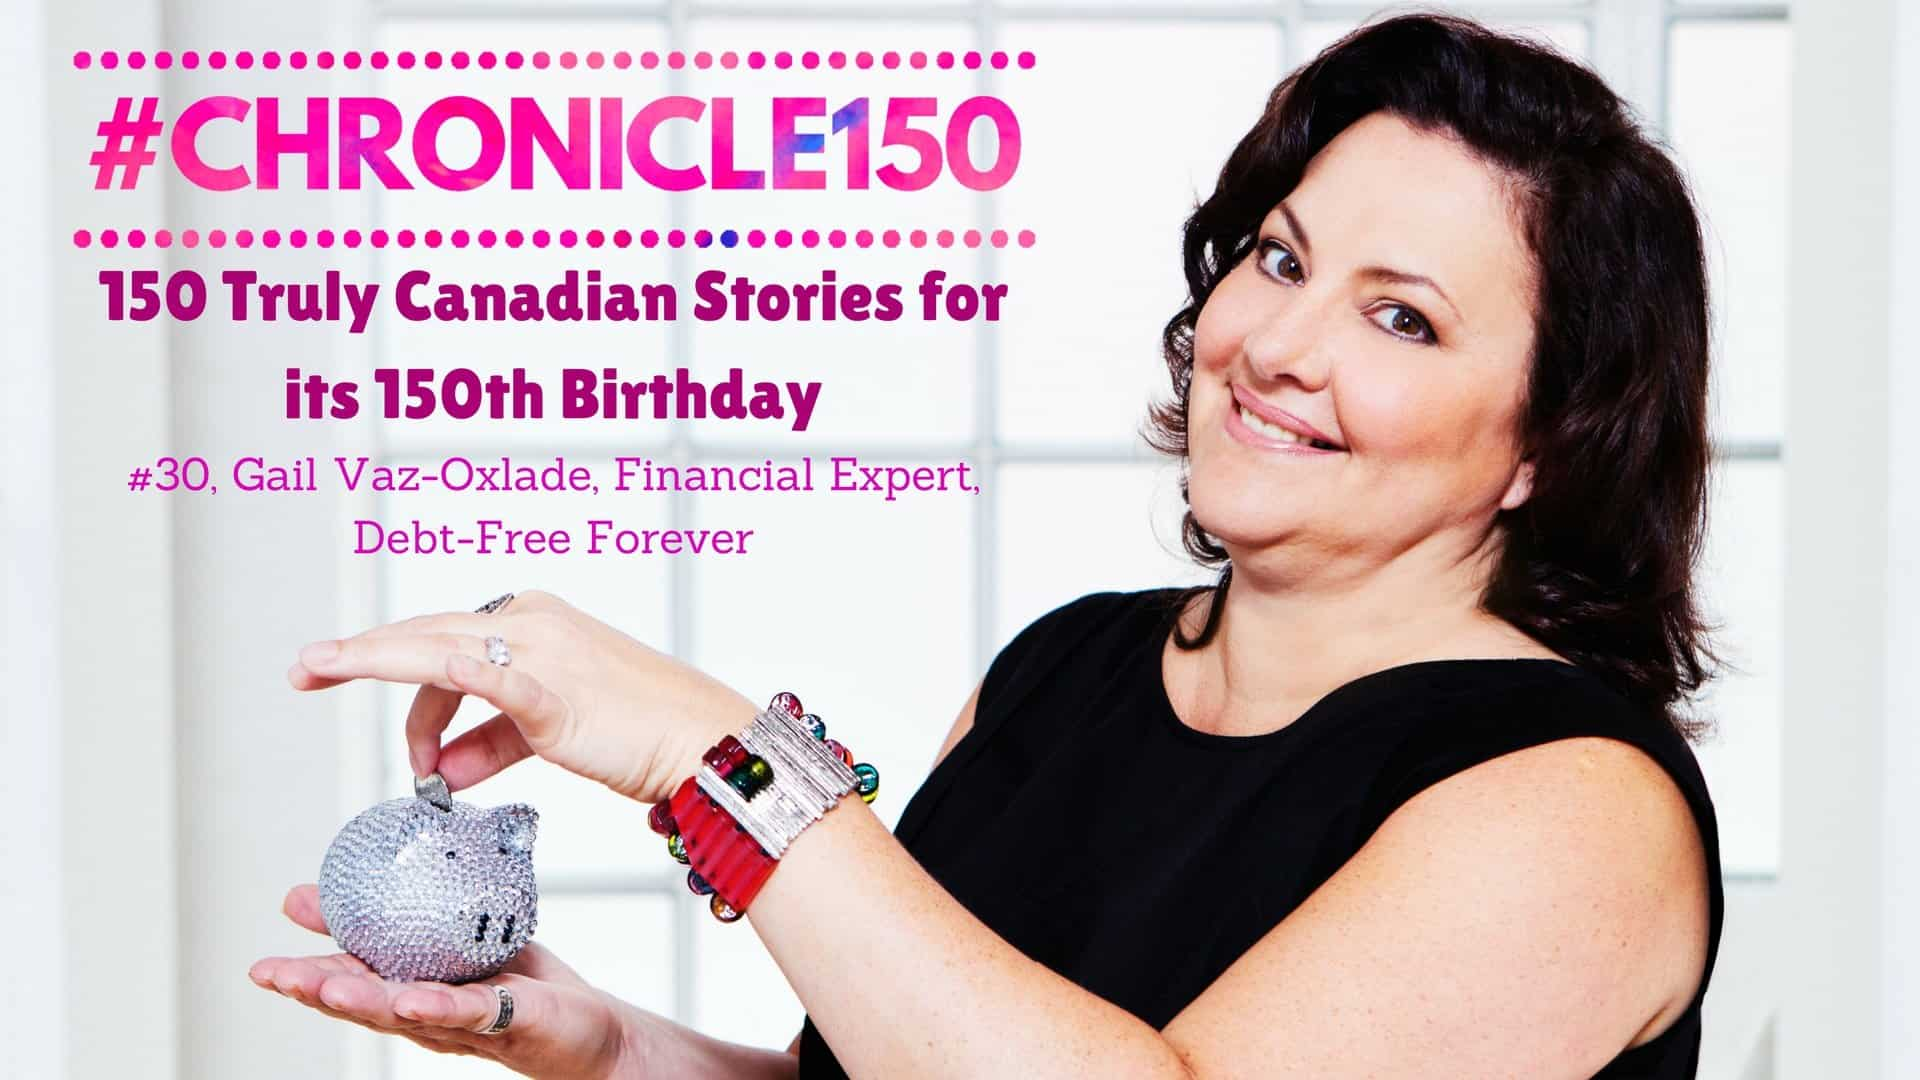 #Chronicle150 — 150 Truly Canadian Stories for its 150th Birthday — #30, Gail Vaz-Oxlade, Financial Expert, Debt-Free Forever (Featured Image) v2